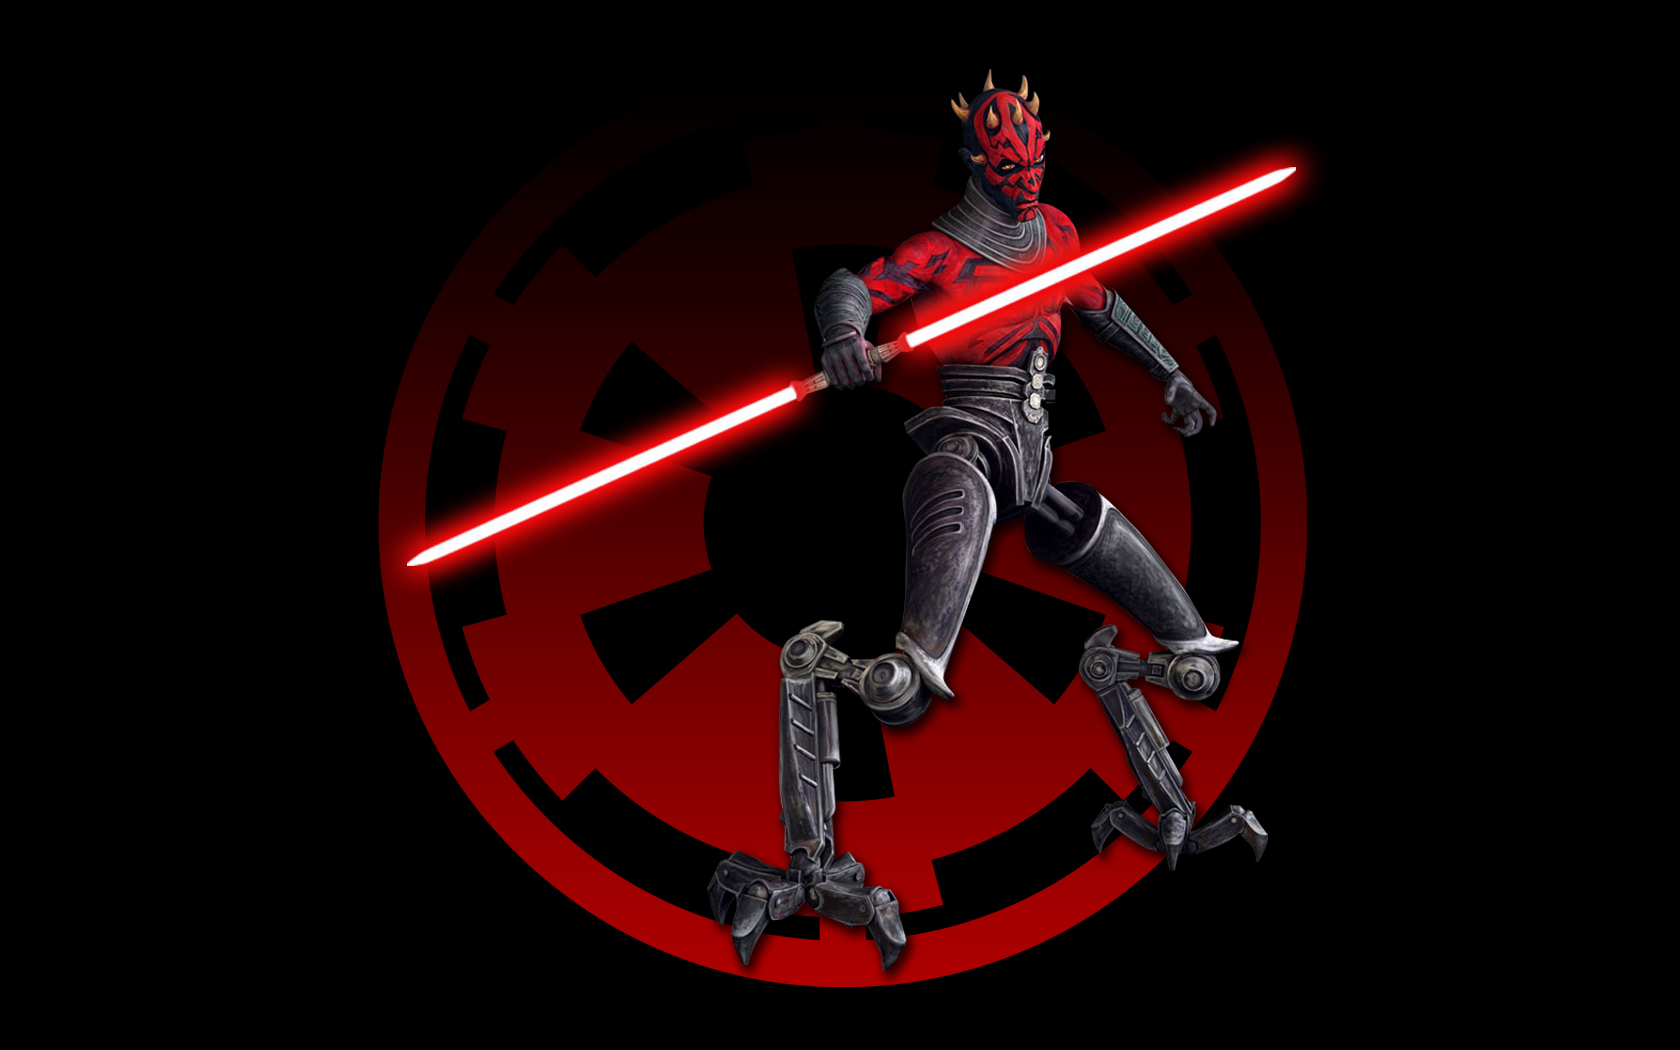 Darth Maul Clone Wars Wallpaper Darthmaulwallpaper For Your Desktop Top Quality Wallpapers HBC Collection 1680x1050